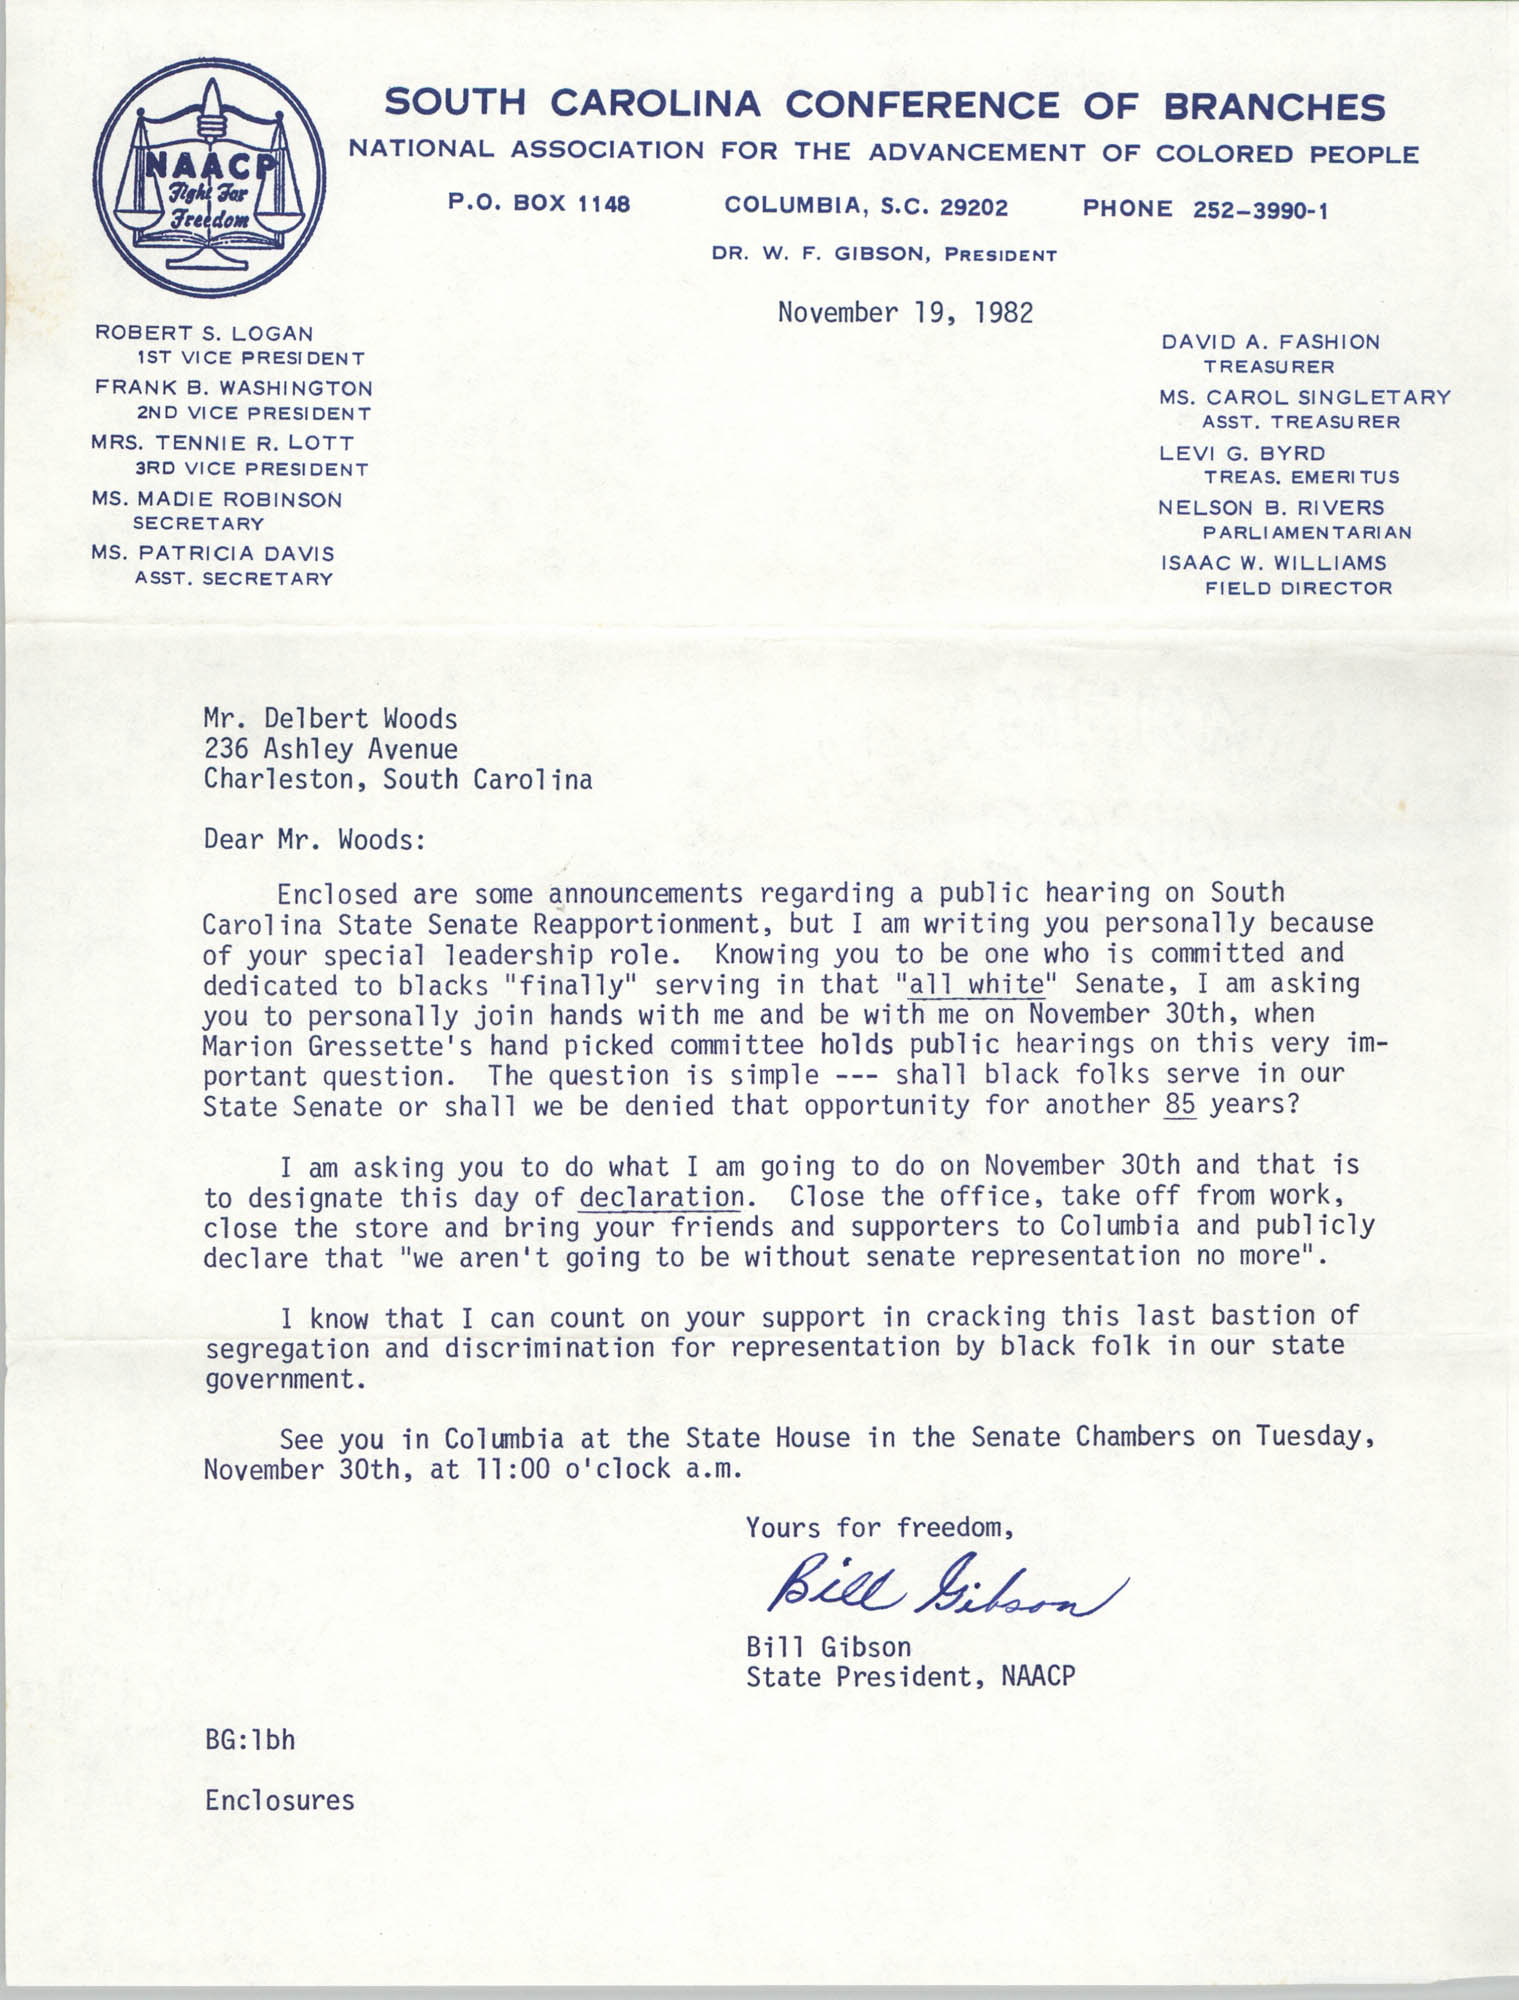 Letter from Bill Gibson to Delbert Woods, November 19, 1982